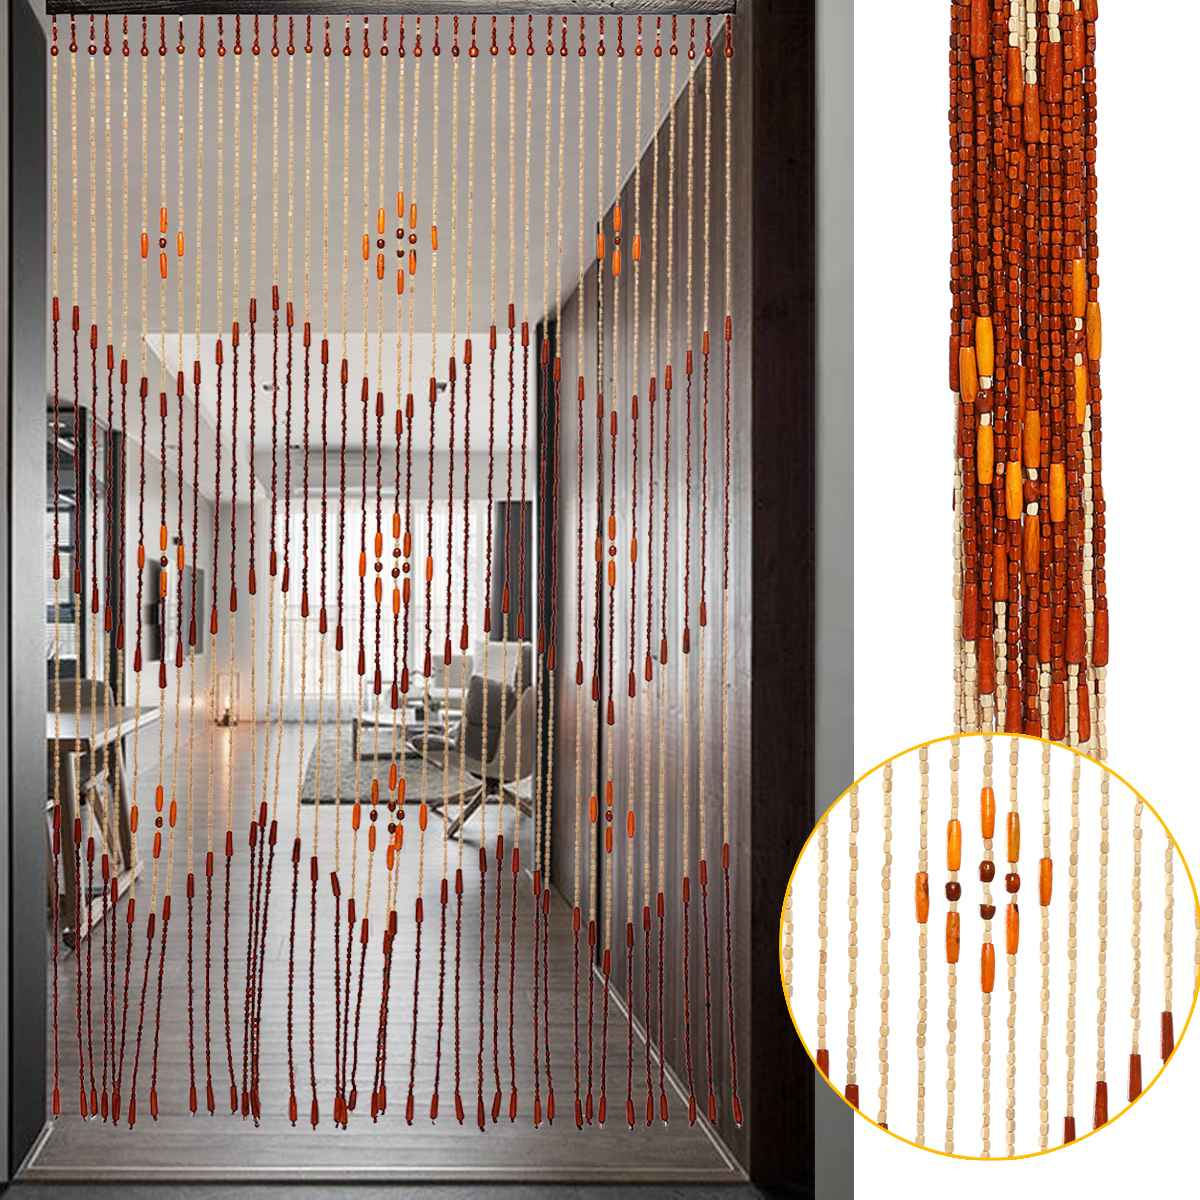 Fashion Wooden Door Curtain Blinds Handmade Fly Screen Wooden Beads Room Divider 90x175cm-38 Wave / 90x195cm-36 Line